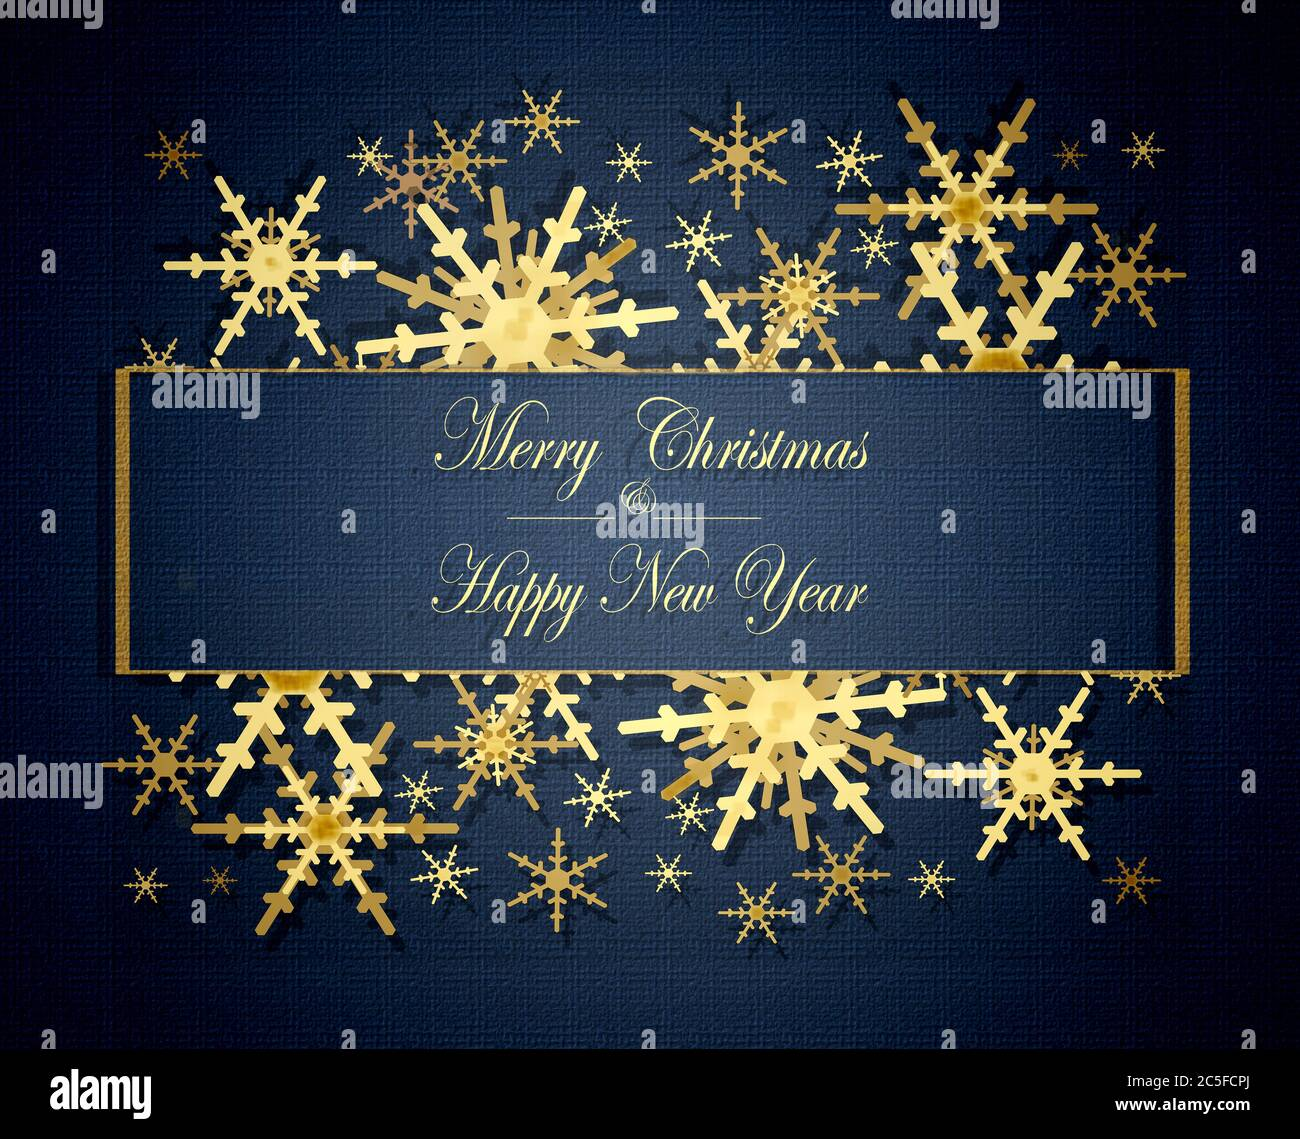 text merry christmas and happy new year illustration on dark blue dramatic background luxury christmas and 2021 new year background with shining golden snowflakes stock photo alamy text merry christmas and happy new year